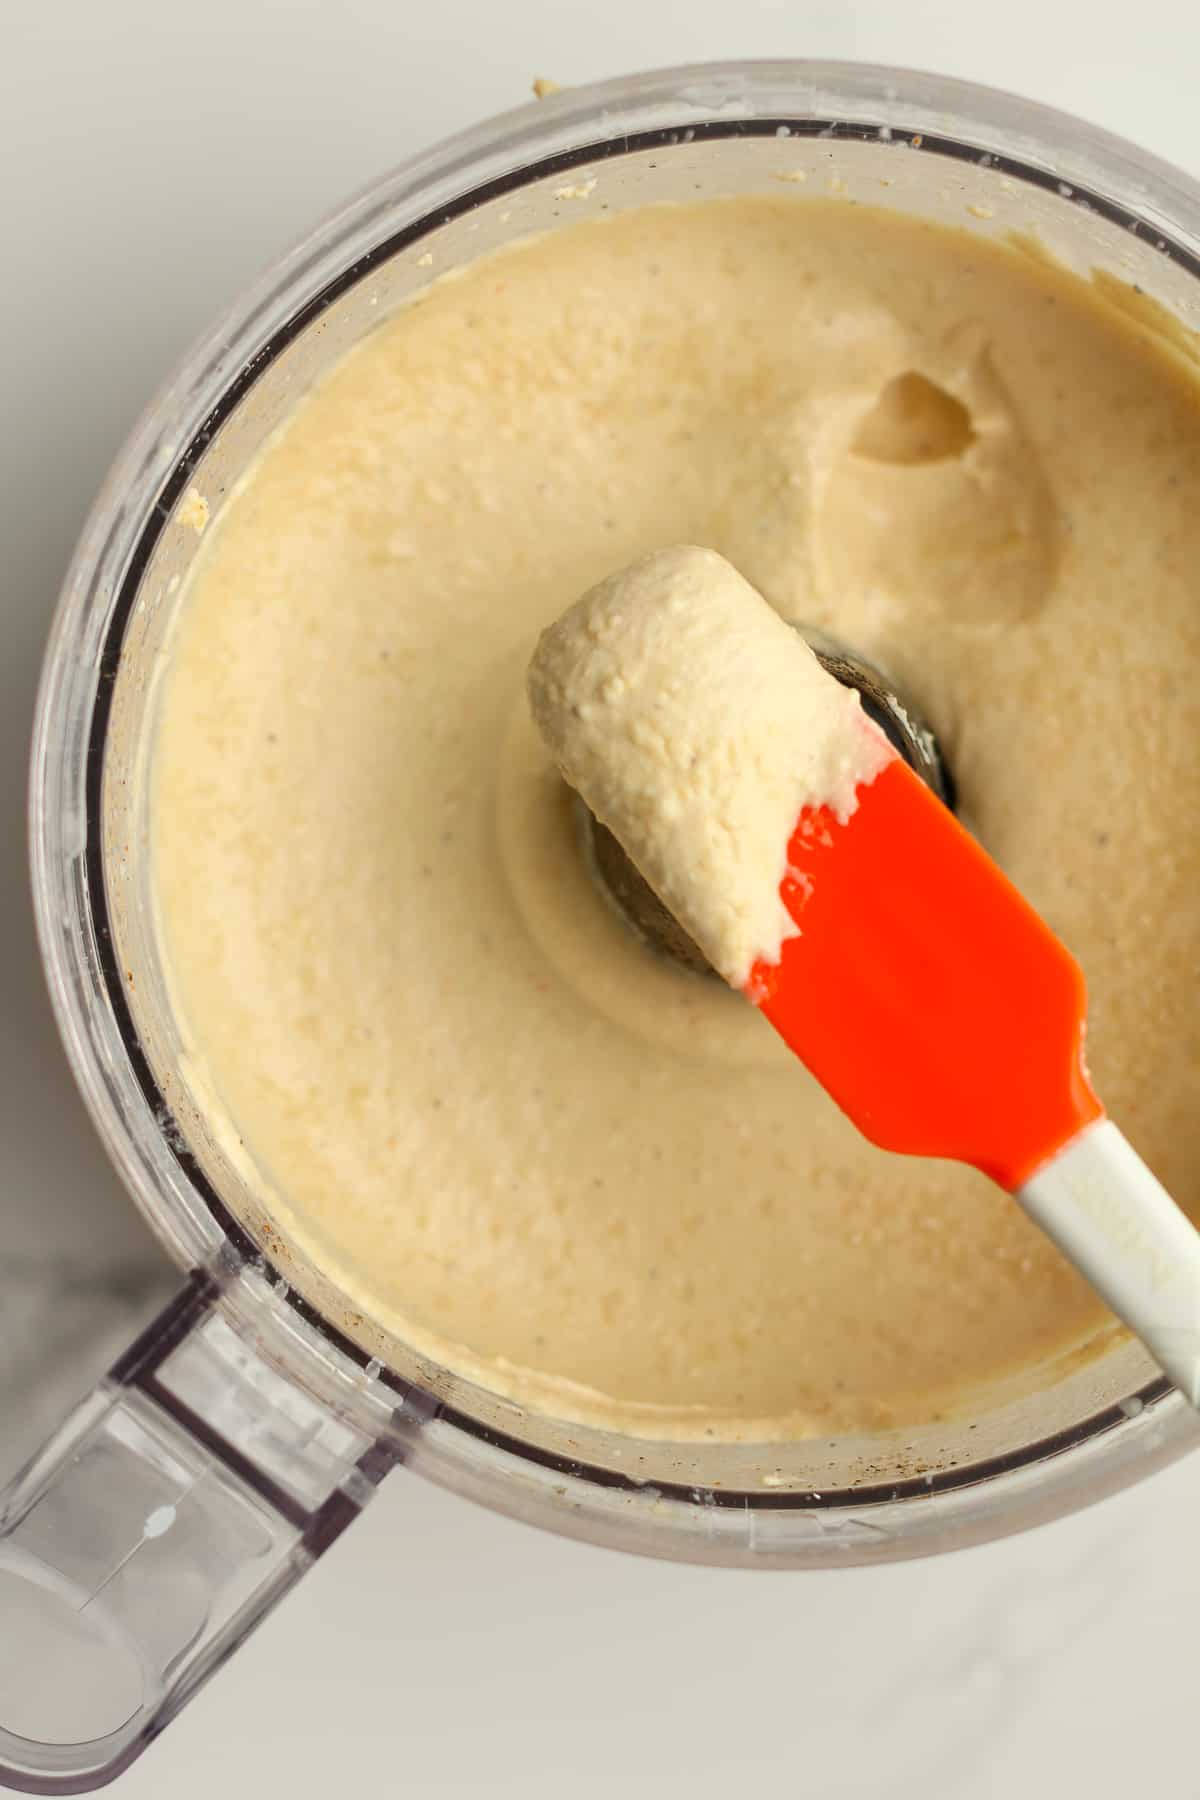 A spatula showing how creamy the hummus is.